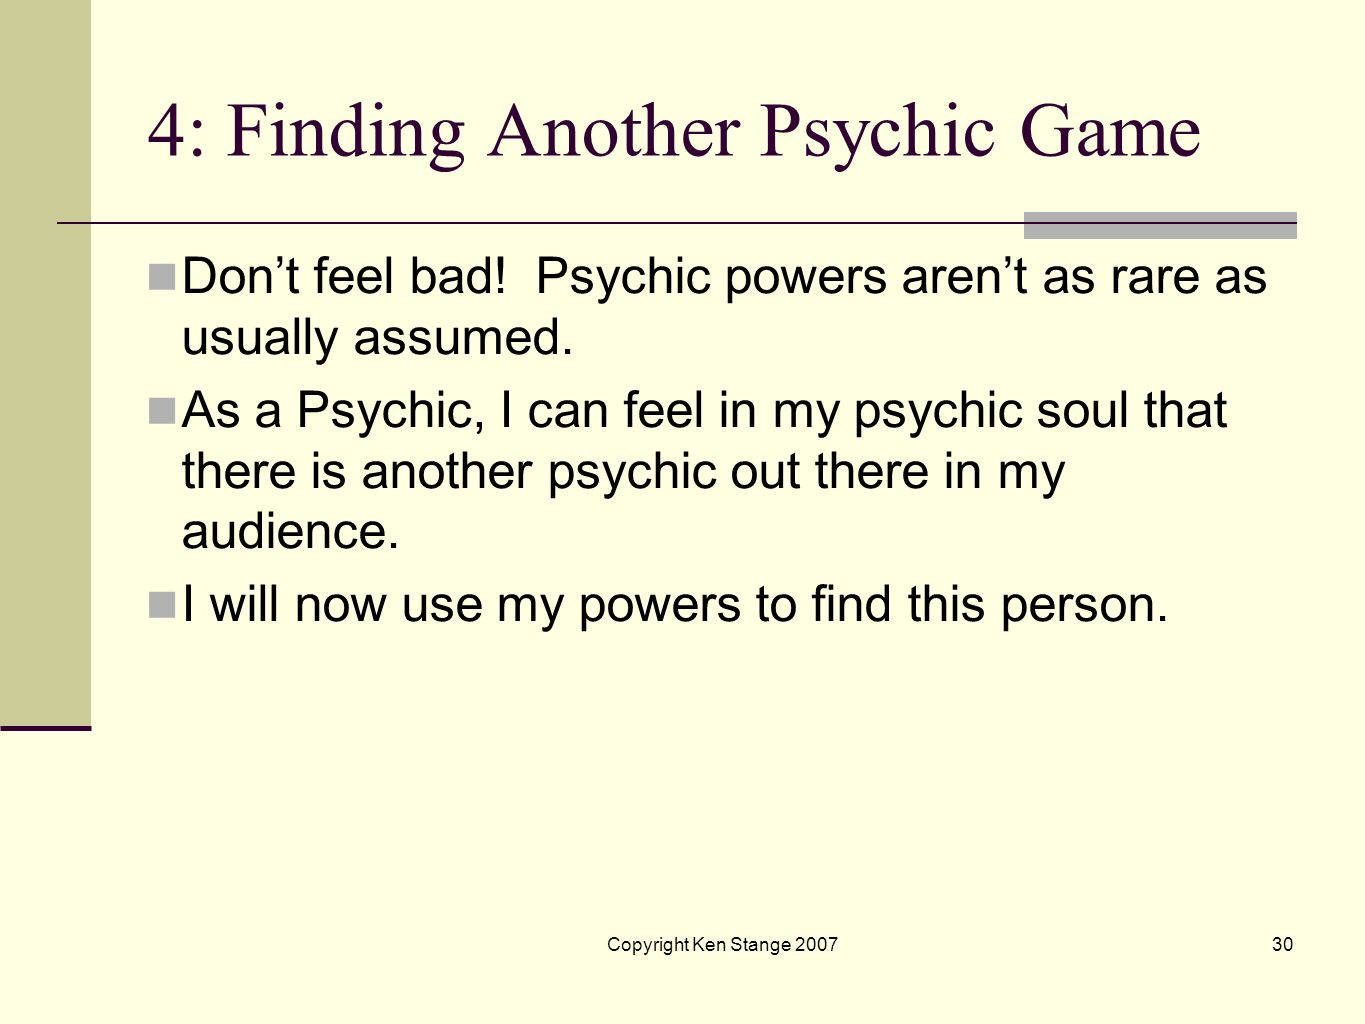 4: Finding Another Psychic Game